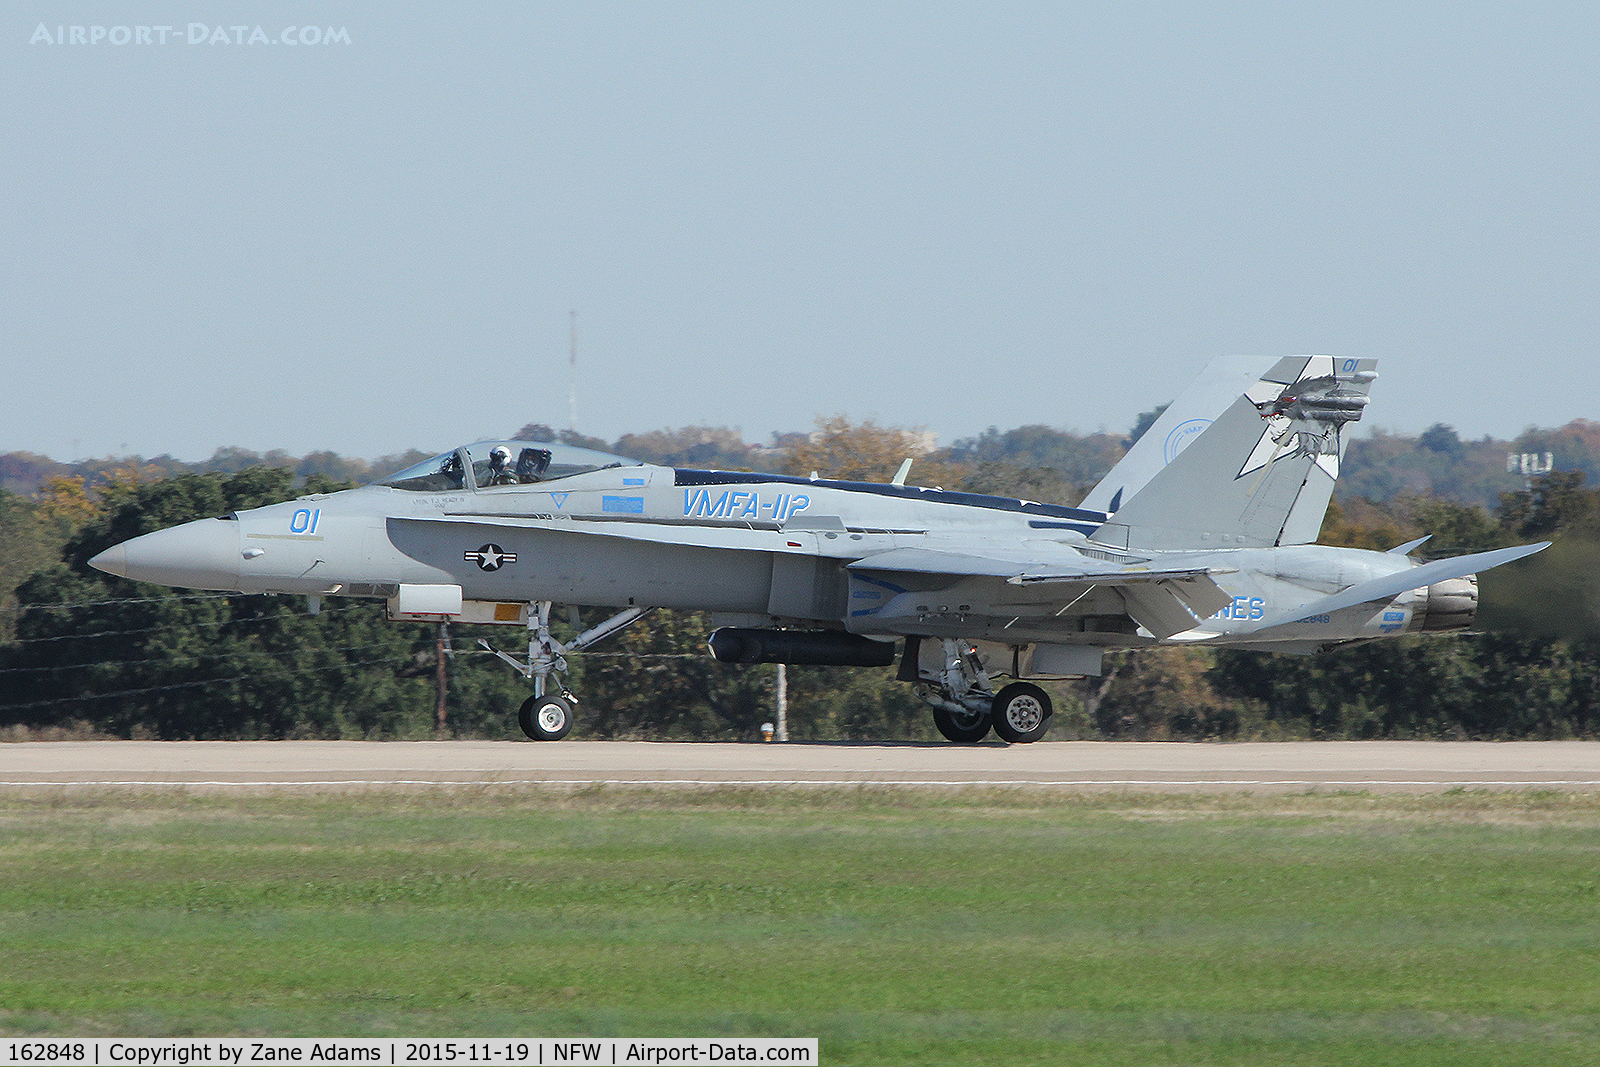 162848, McDonnell Douglas F/A-18A++ Hornet C/N 374/A313, At NAS Fort Worth